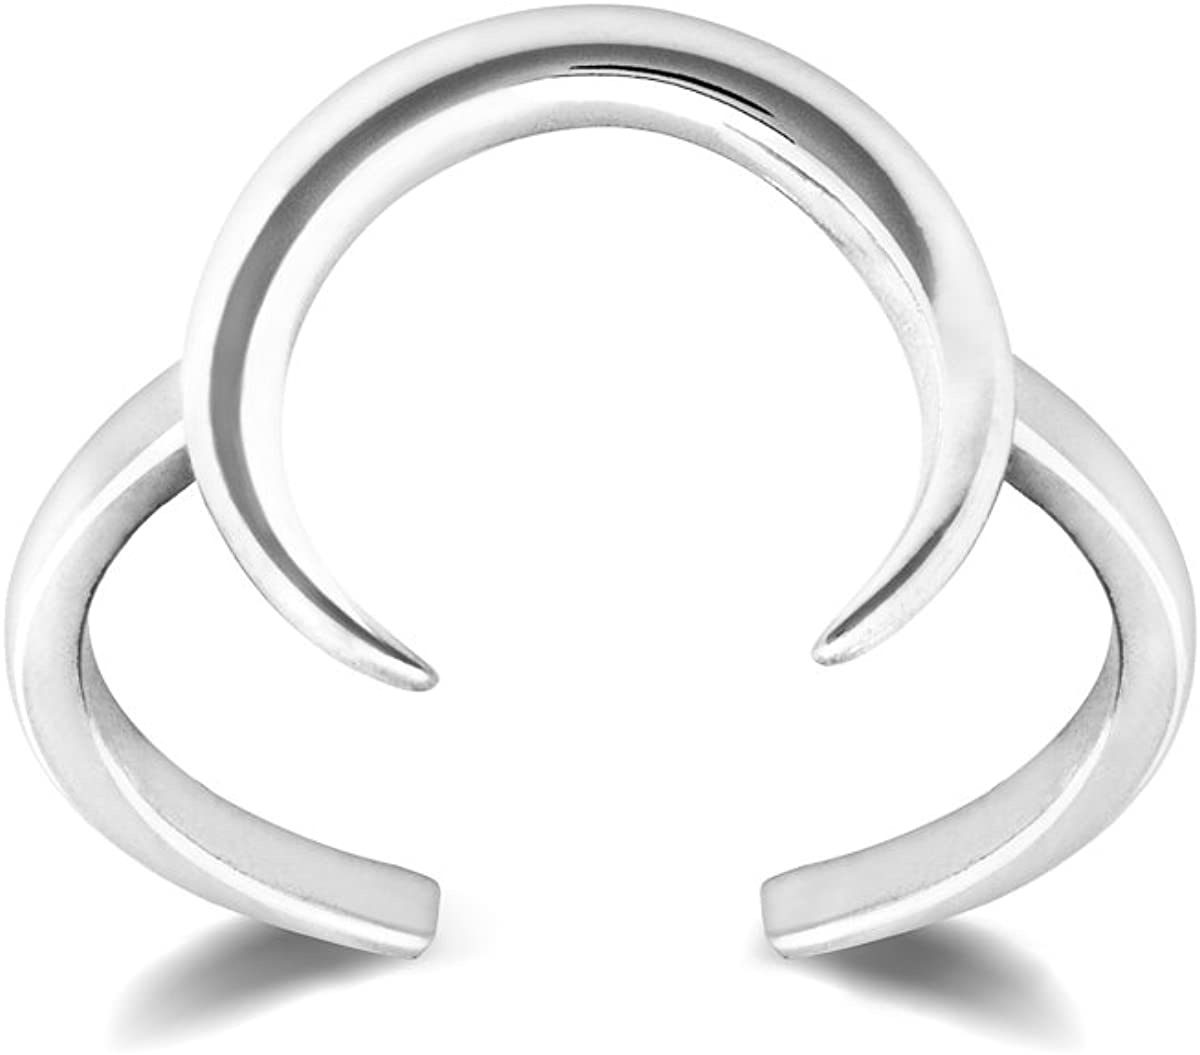 HarperCrown Crescent Moon Ring - 925 Sterling Silver - Adjustable